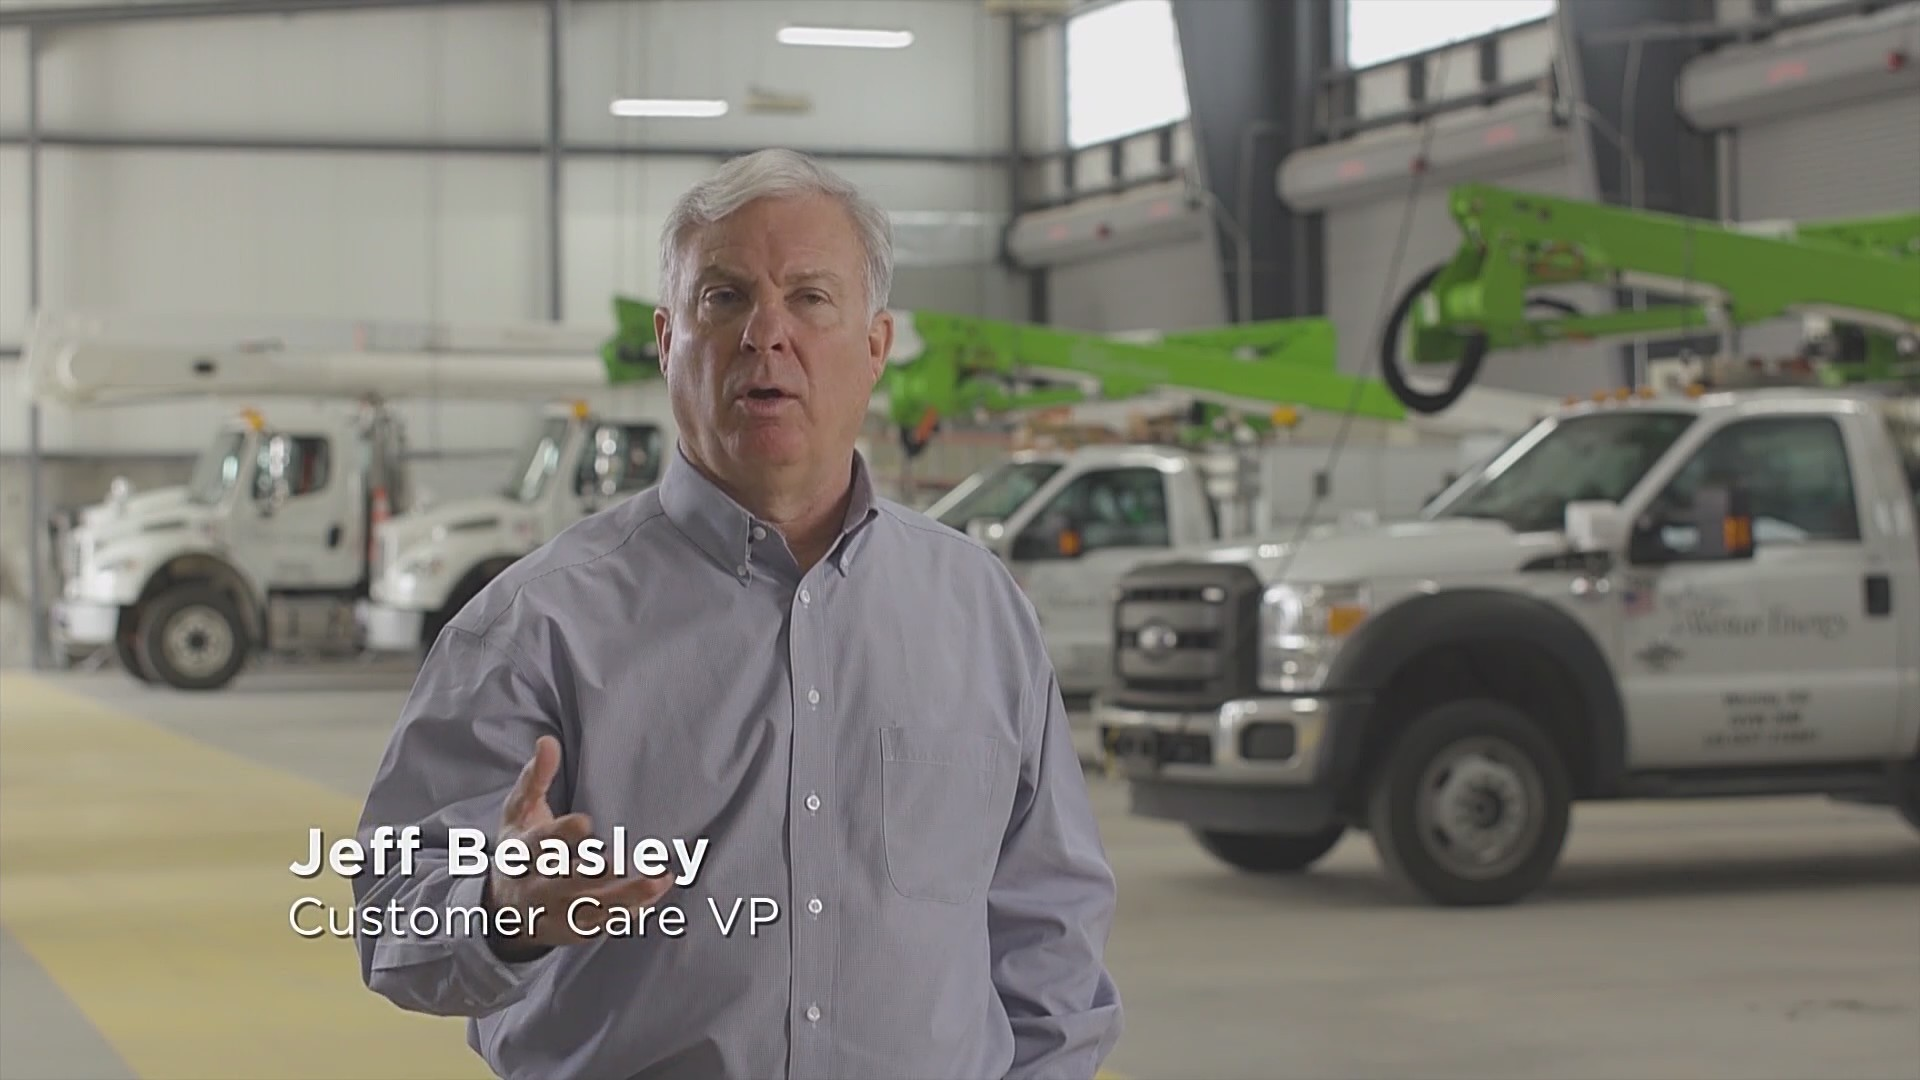 Westar Energy: Proud To Serve The Community